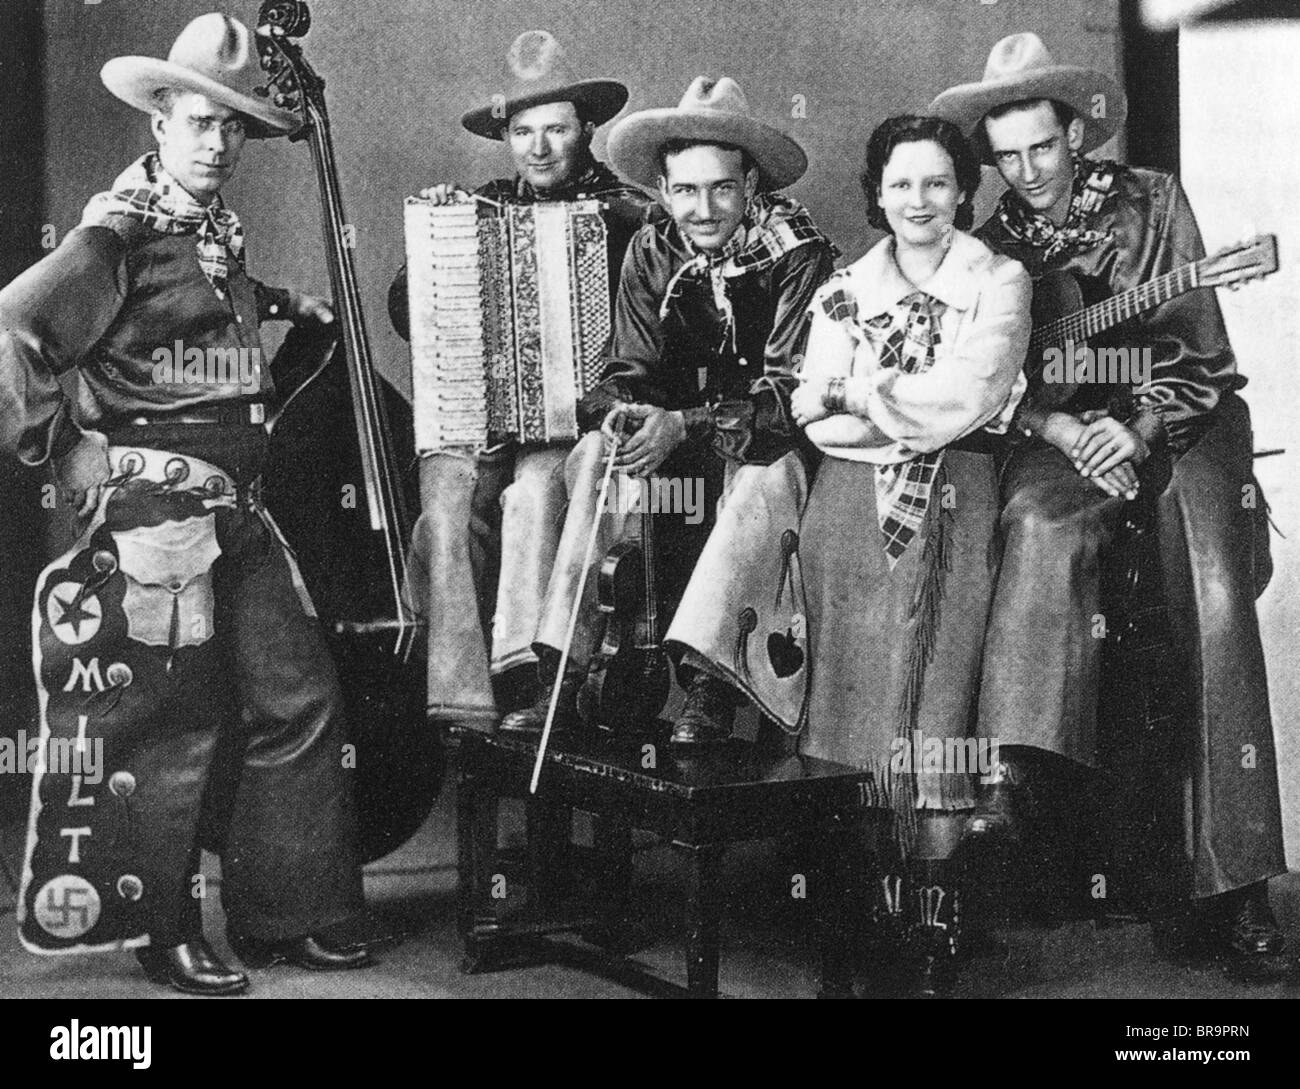 LOUISE MASSEY AND THE WESTENERS Early Country music group about 1935 ... Accordion